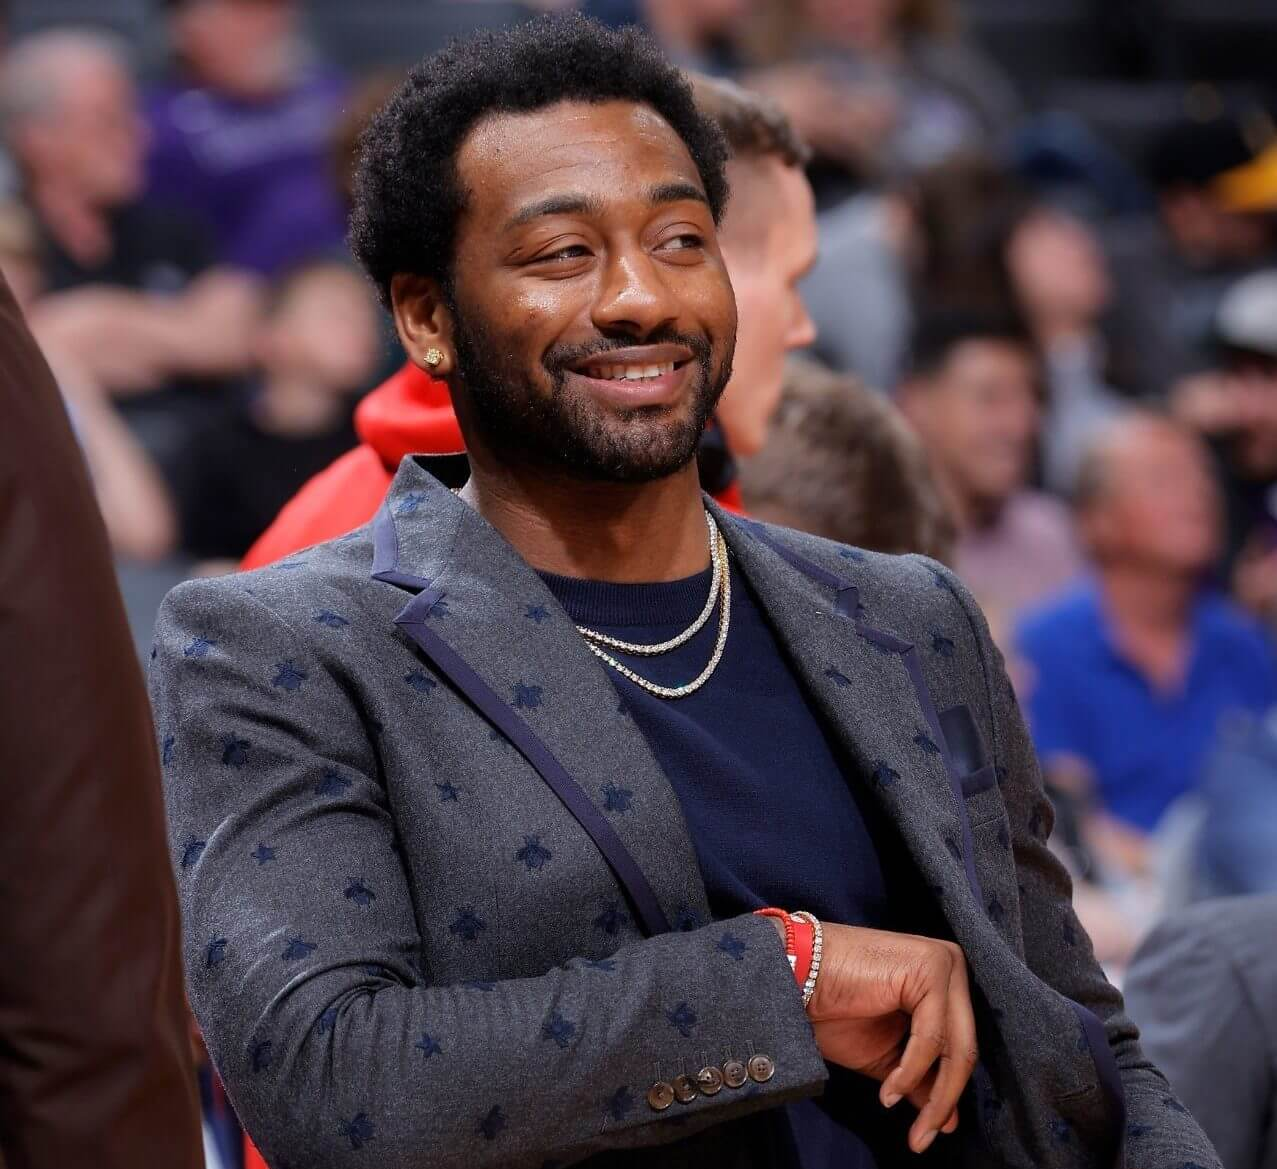 HOOPERS MEET HEROES: WIZARDS' JOHN WALL AND D.C.'S RN ASHLEY JENKINS